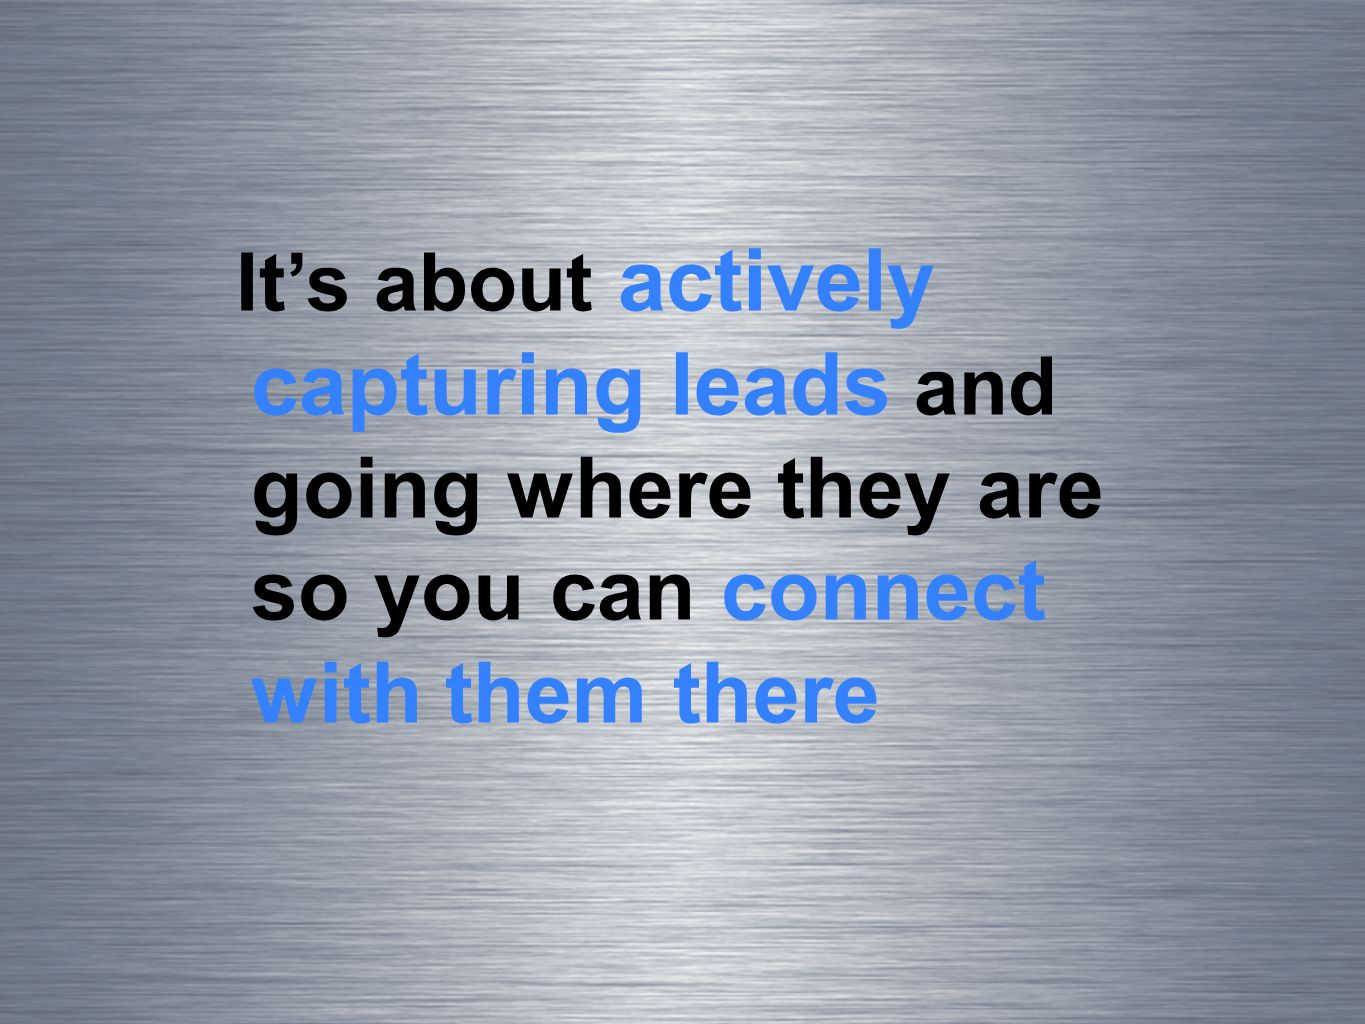 Its about actively capturing leads and going where they are so you can connect with them there